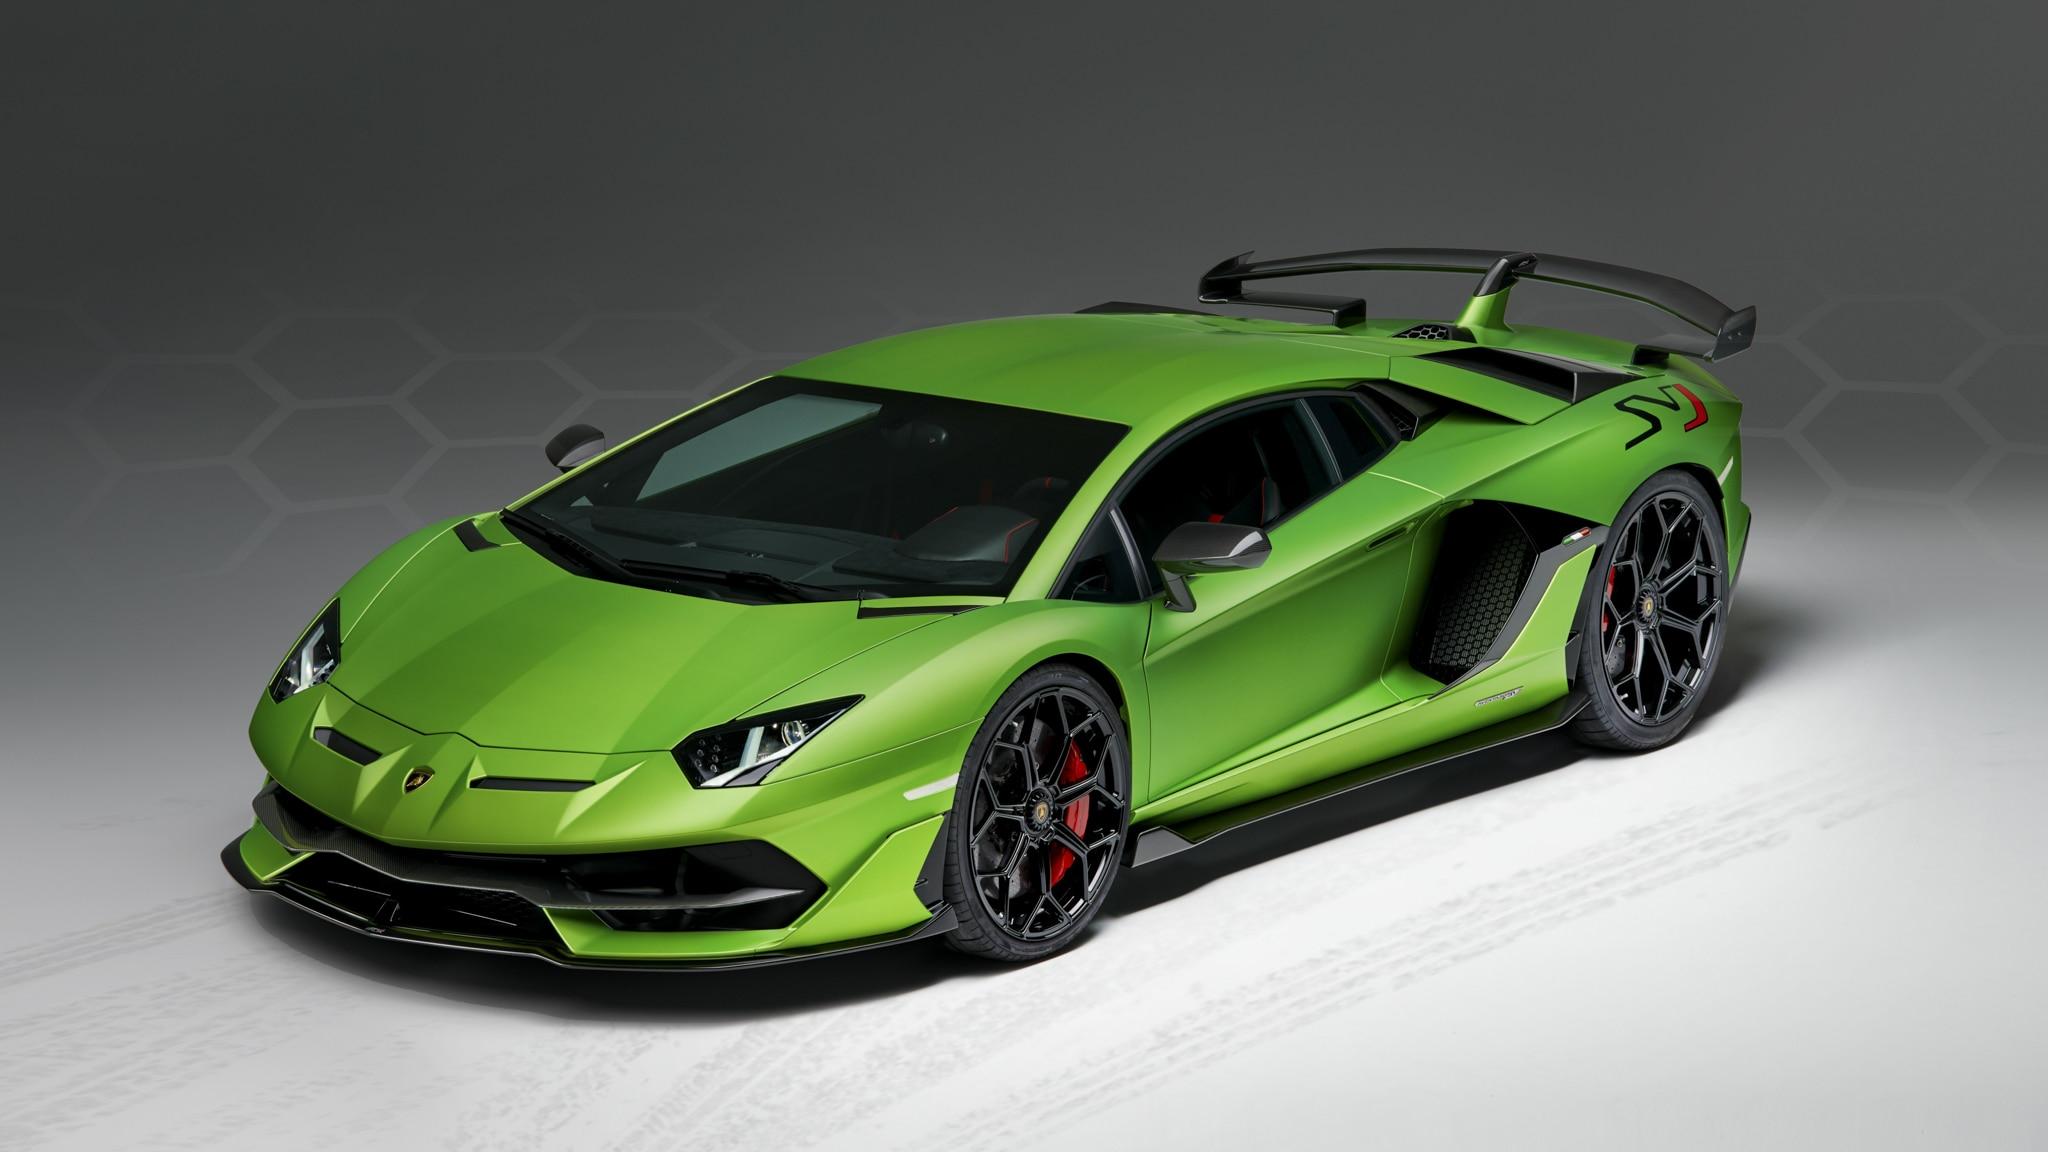 The Lamborghini Aventador History Photos Generations Specifications